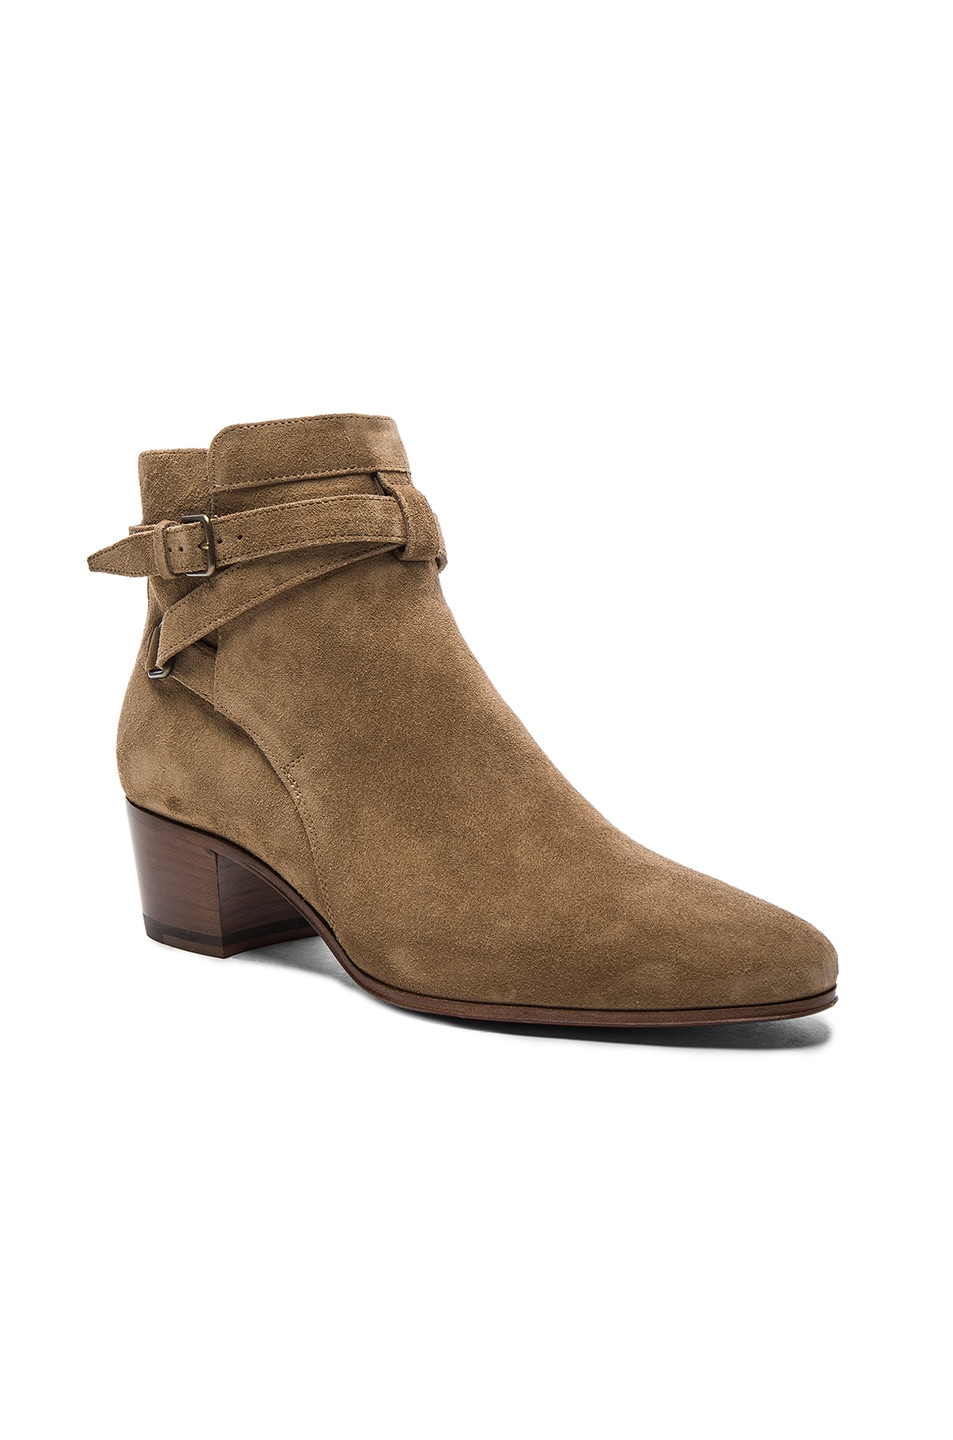 Image 2 of Saint Laurent Suede Blake Boots in Light Cigare